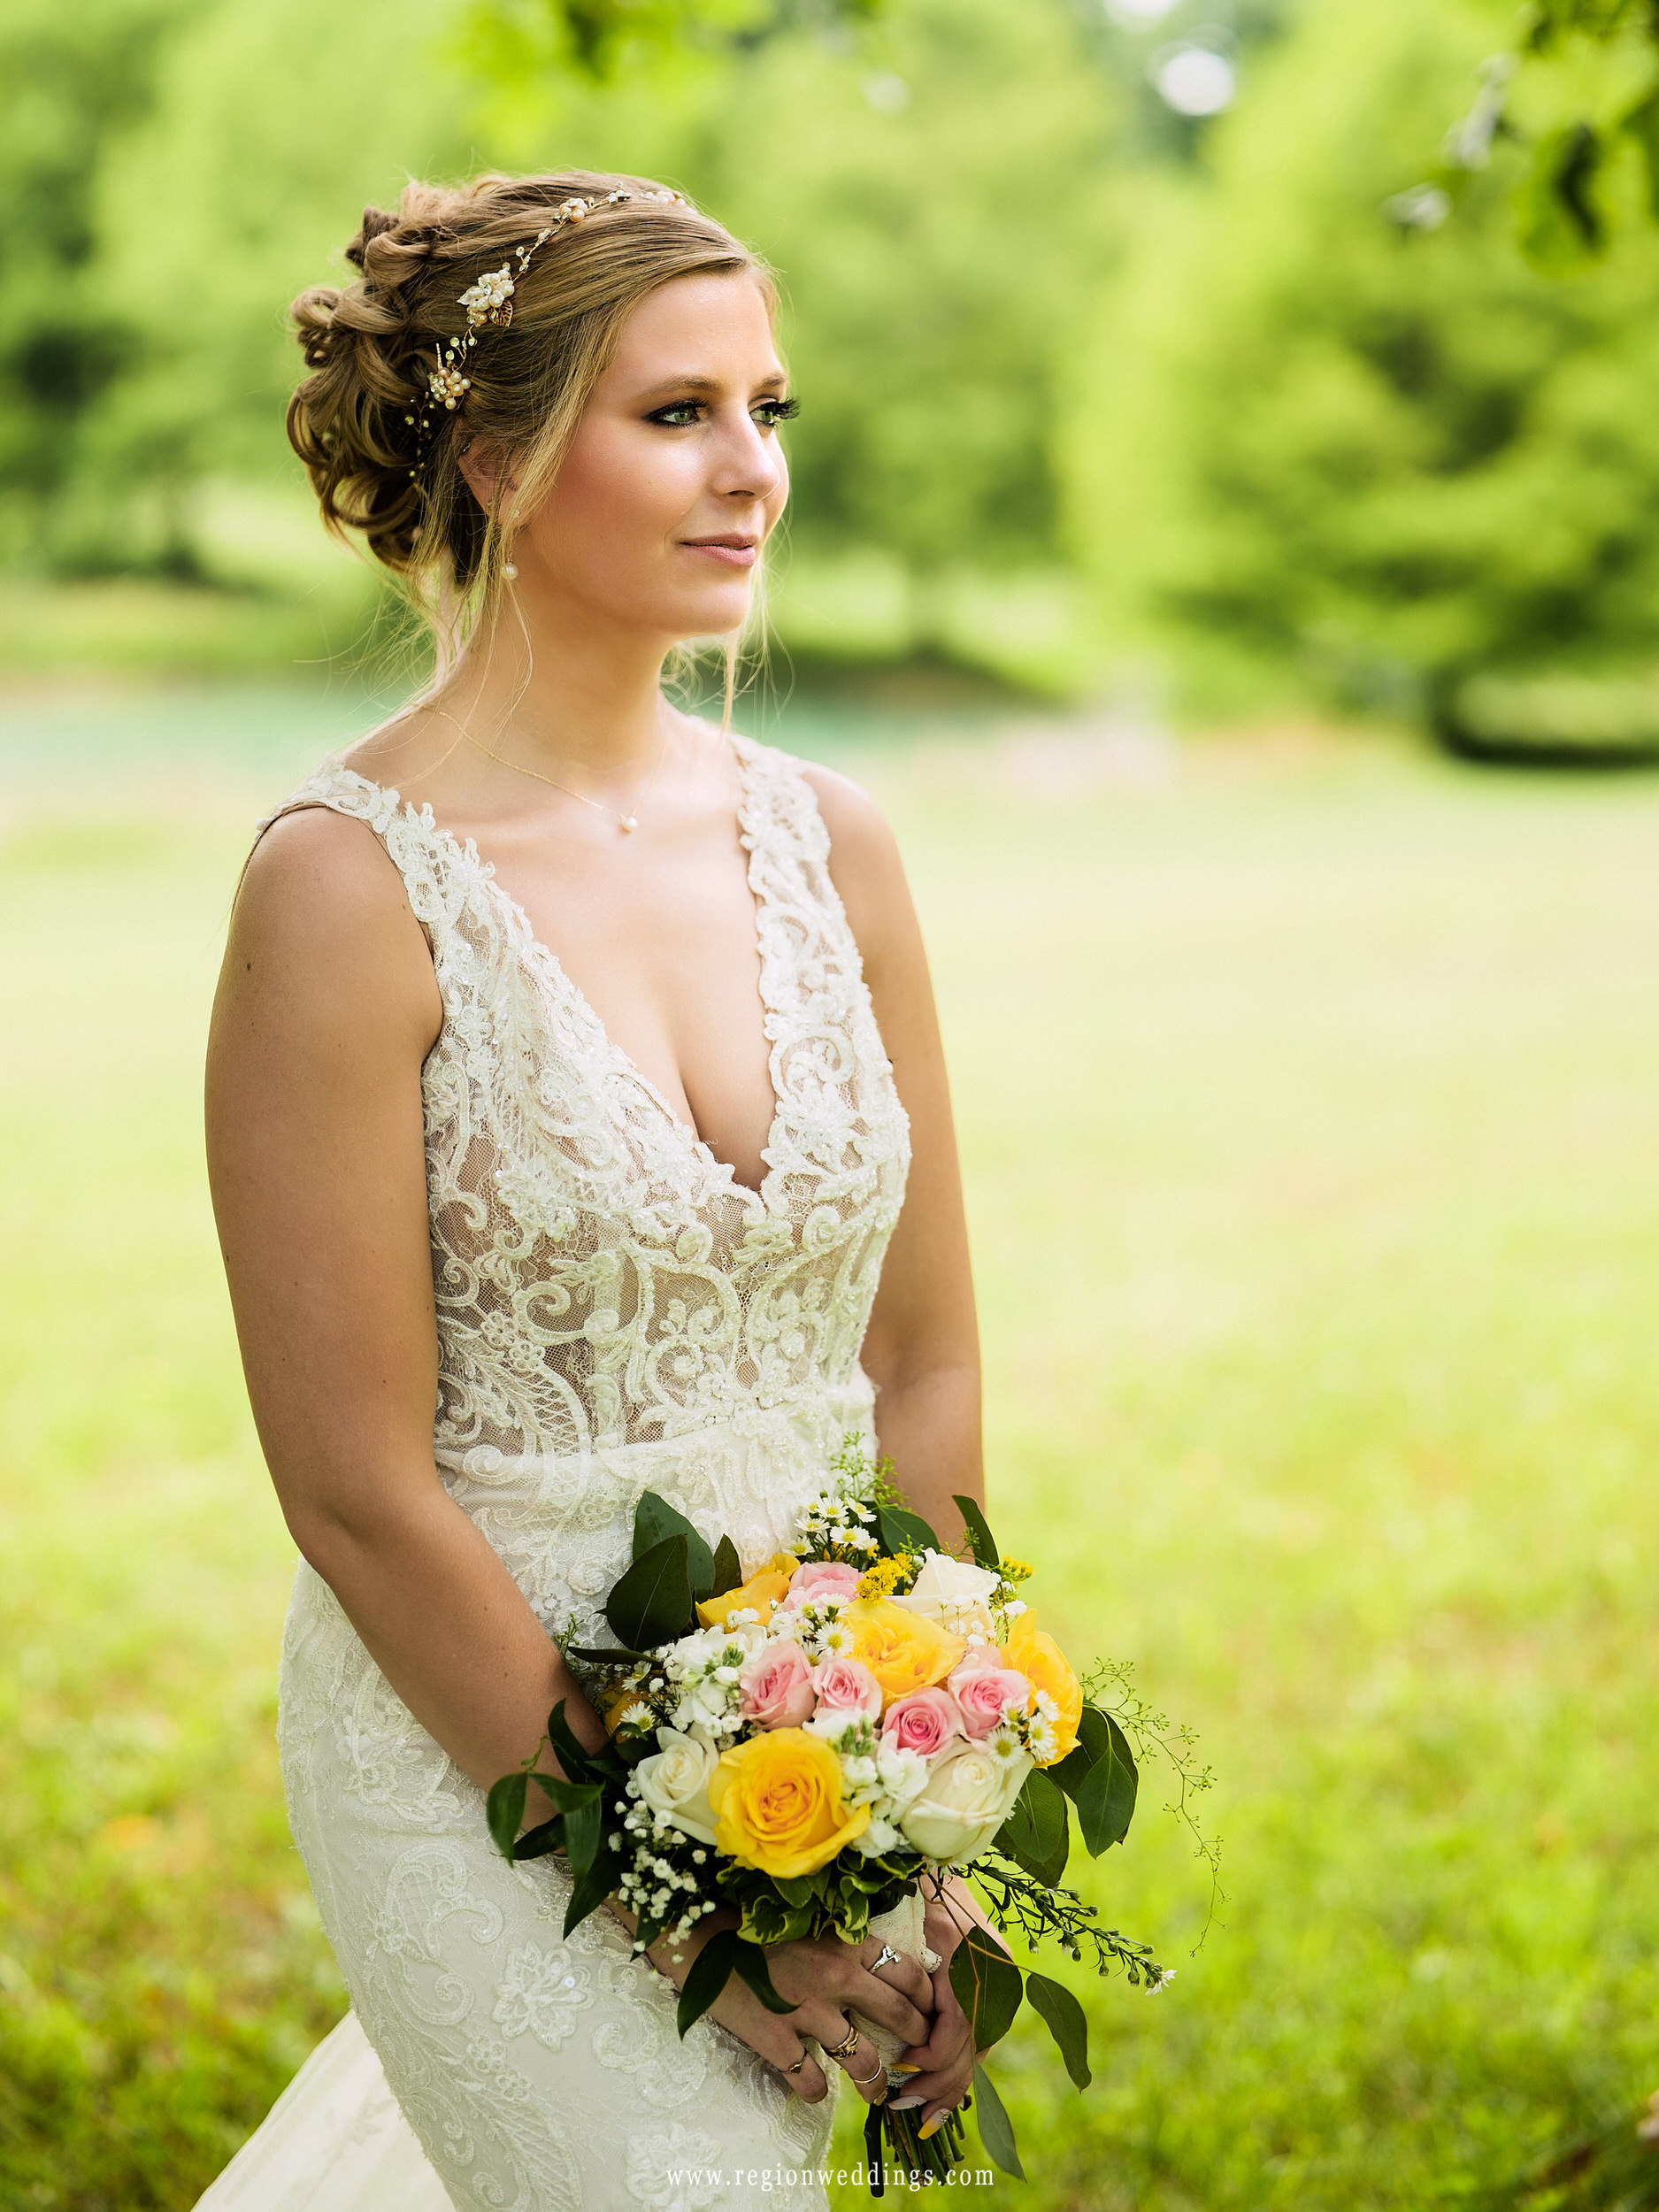 The bride looks across the beautiful green fields on her wedding day.